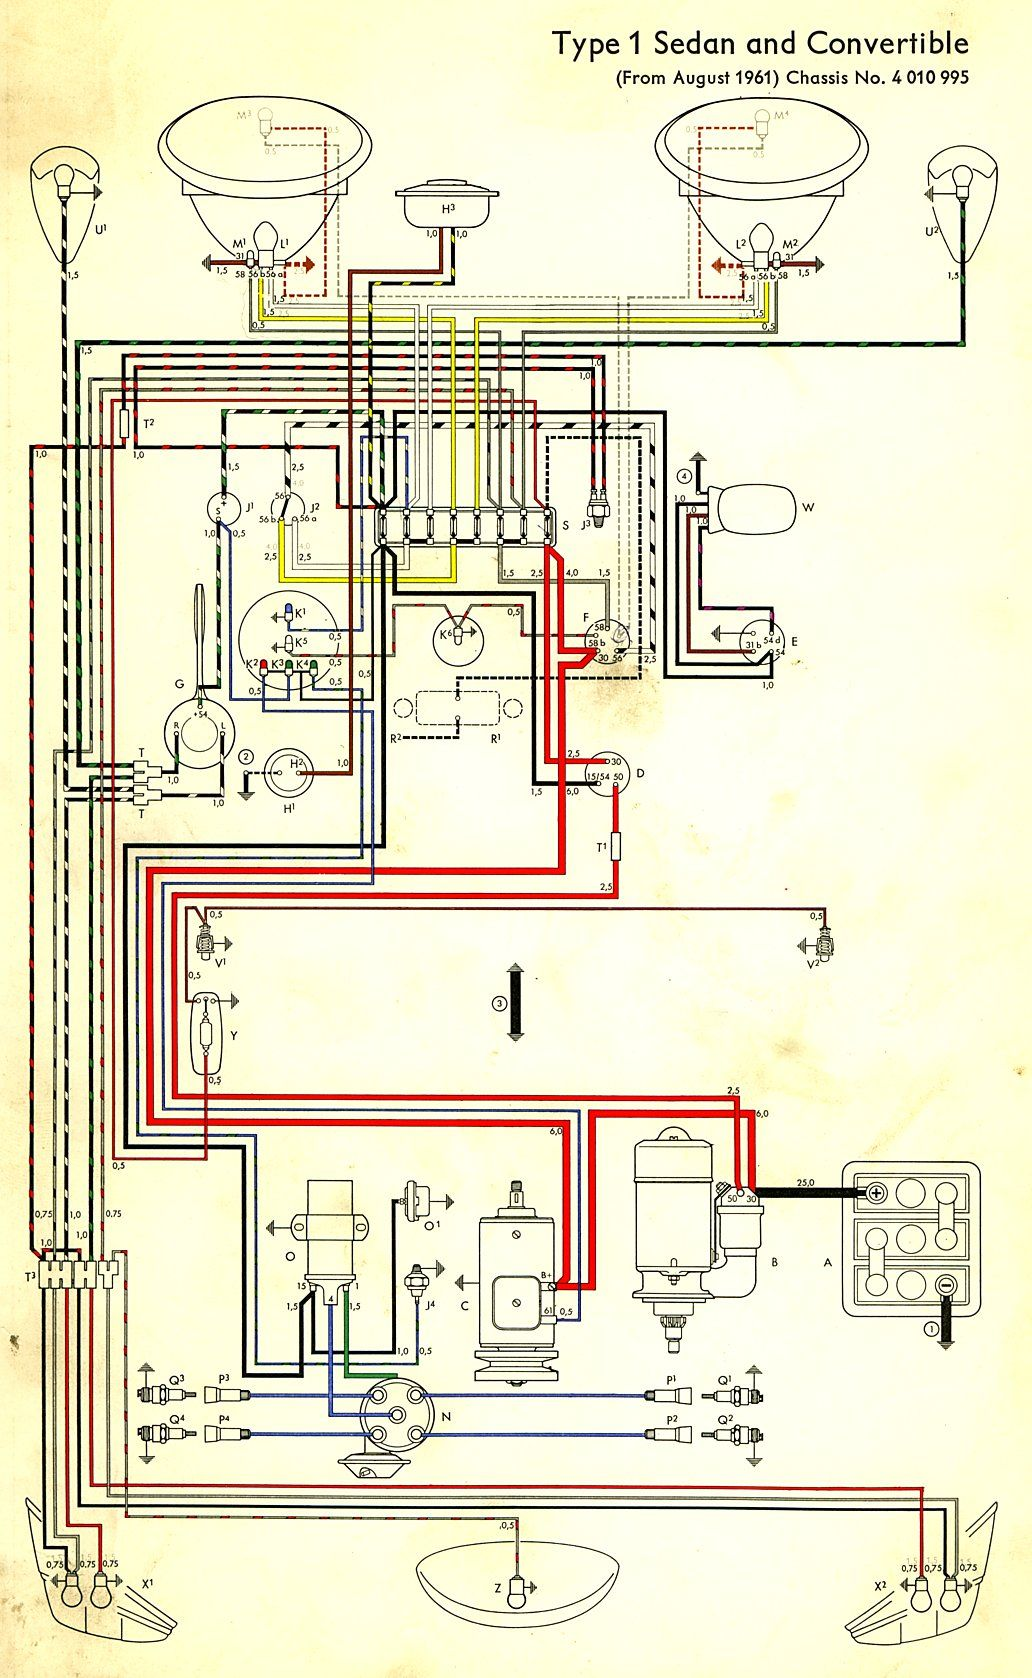 wiring diagram in color 1964 vw bug beetle convertible the samba rh pinterest com VW Starter Wiring Diagram 64 vw beetle wiring diagram